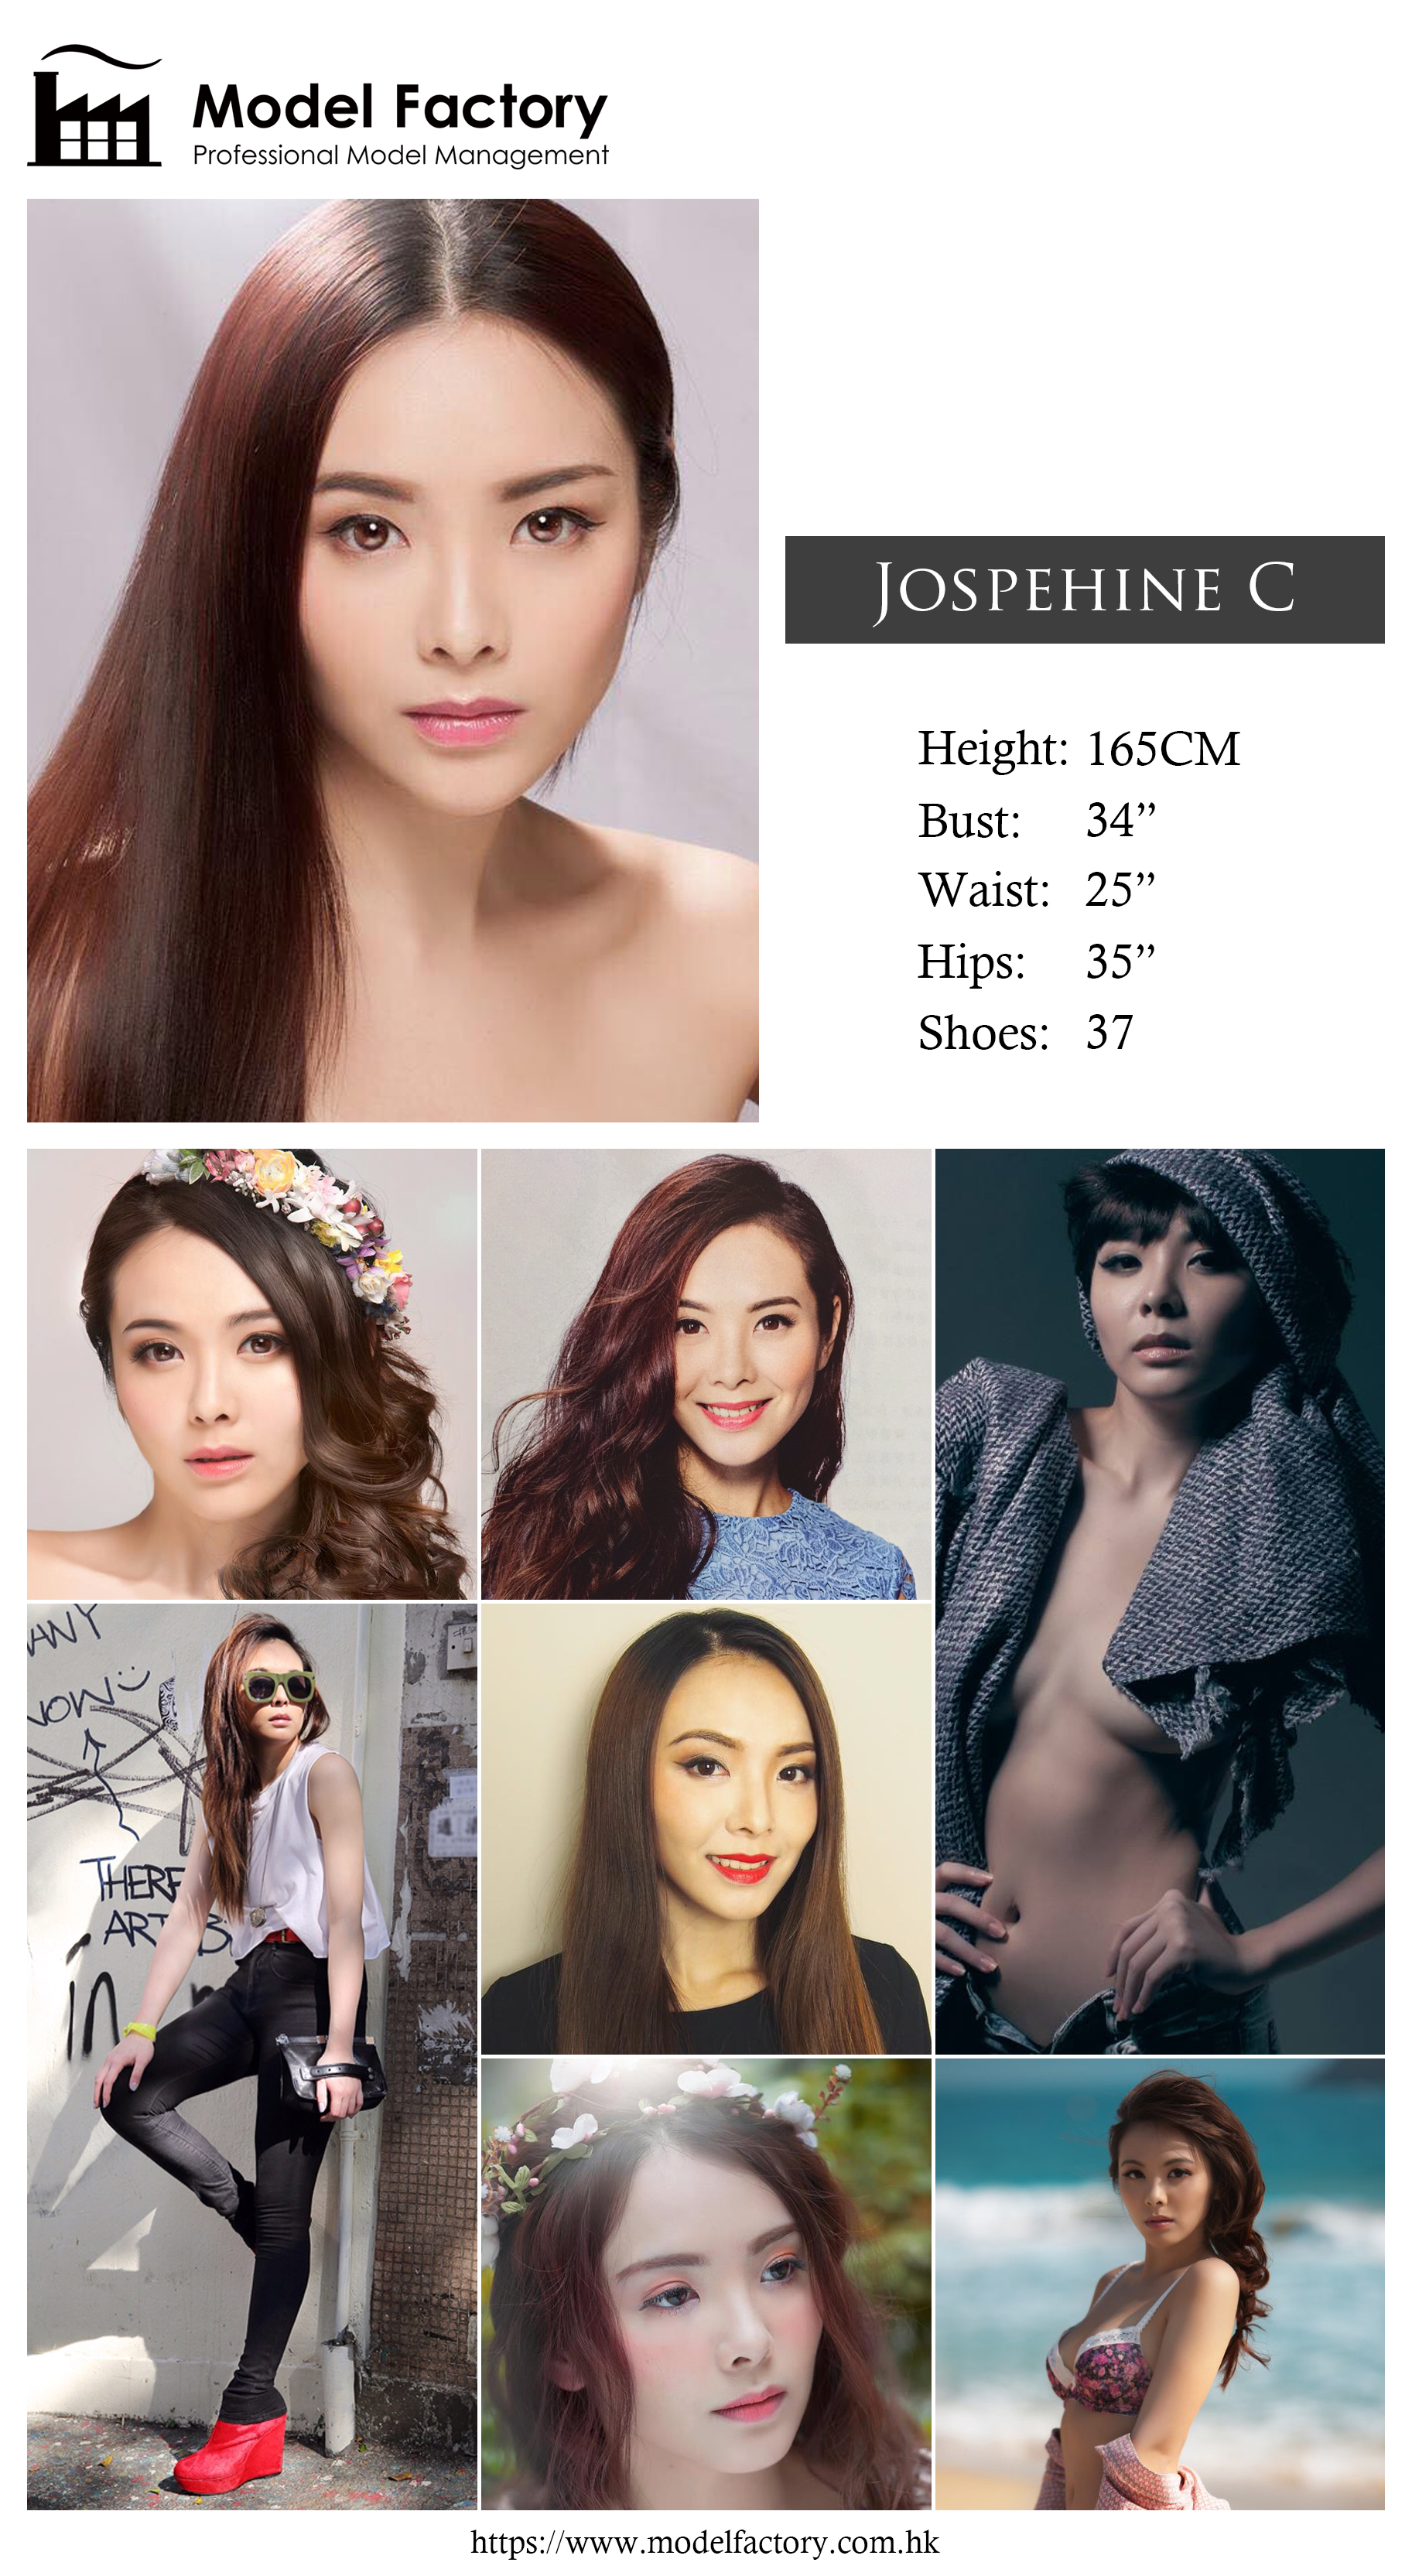 Model Factory Hong Kong Female Model JospehineC